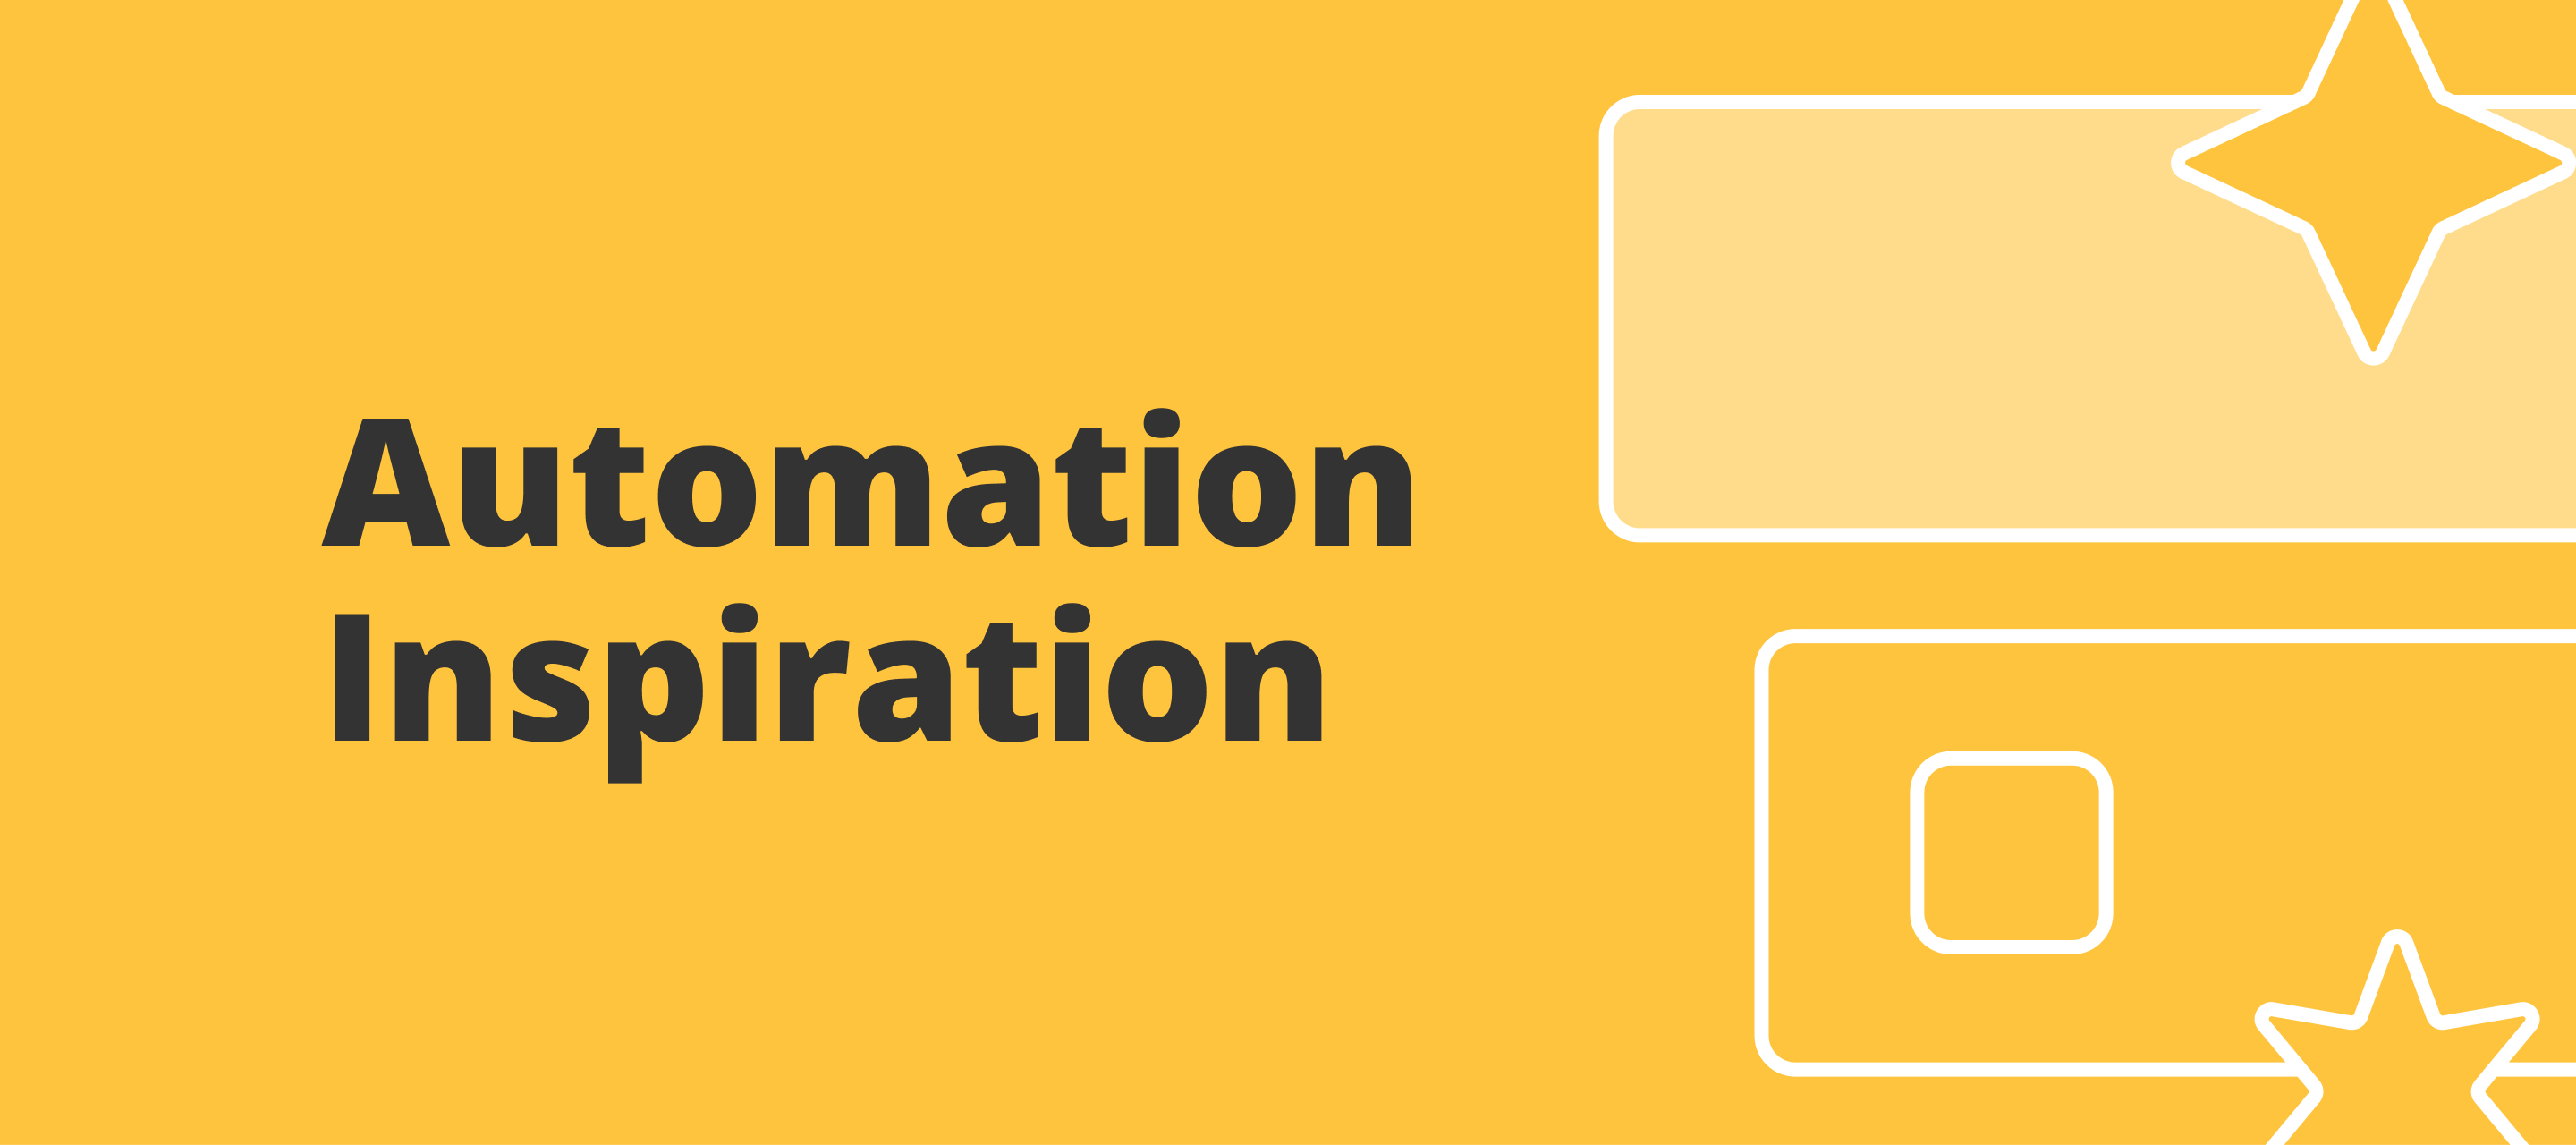 How to automate a manual process without feeling overwhelmed